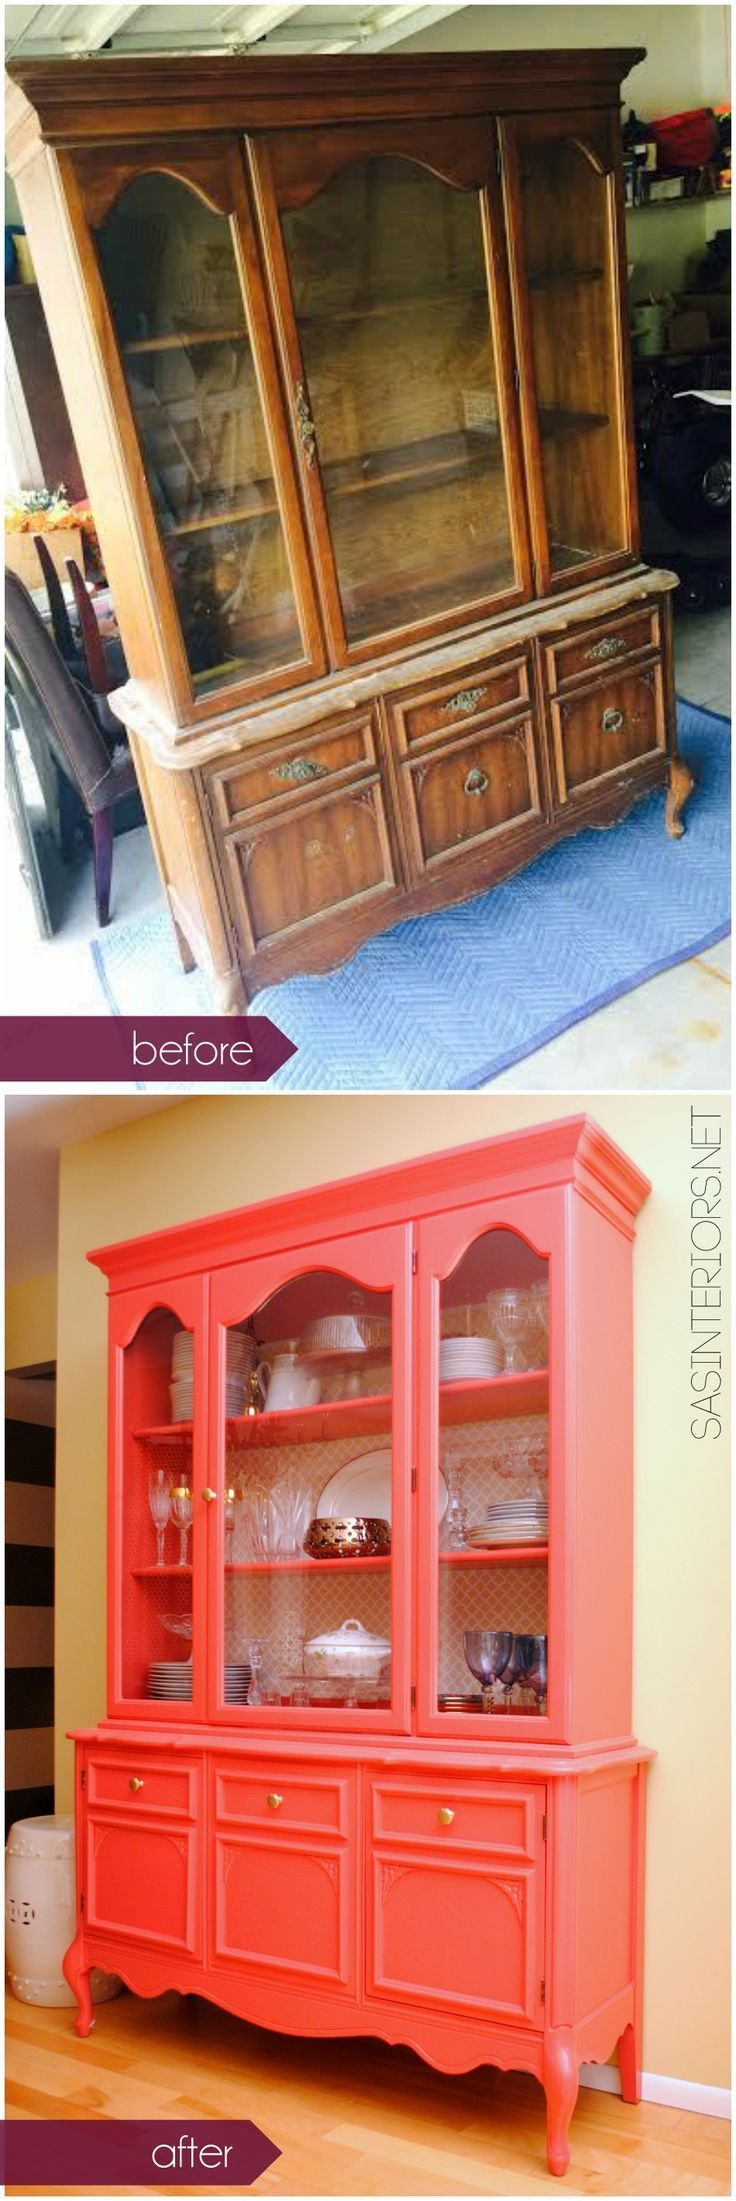 We love this before and after display cabinet makeover - the coral paint really pops!